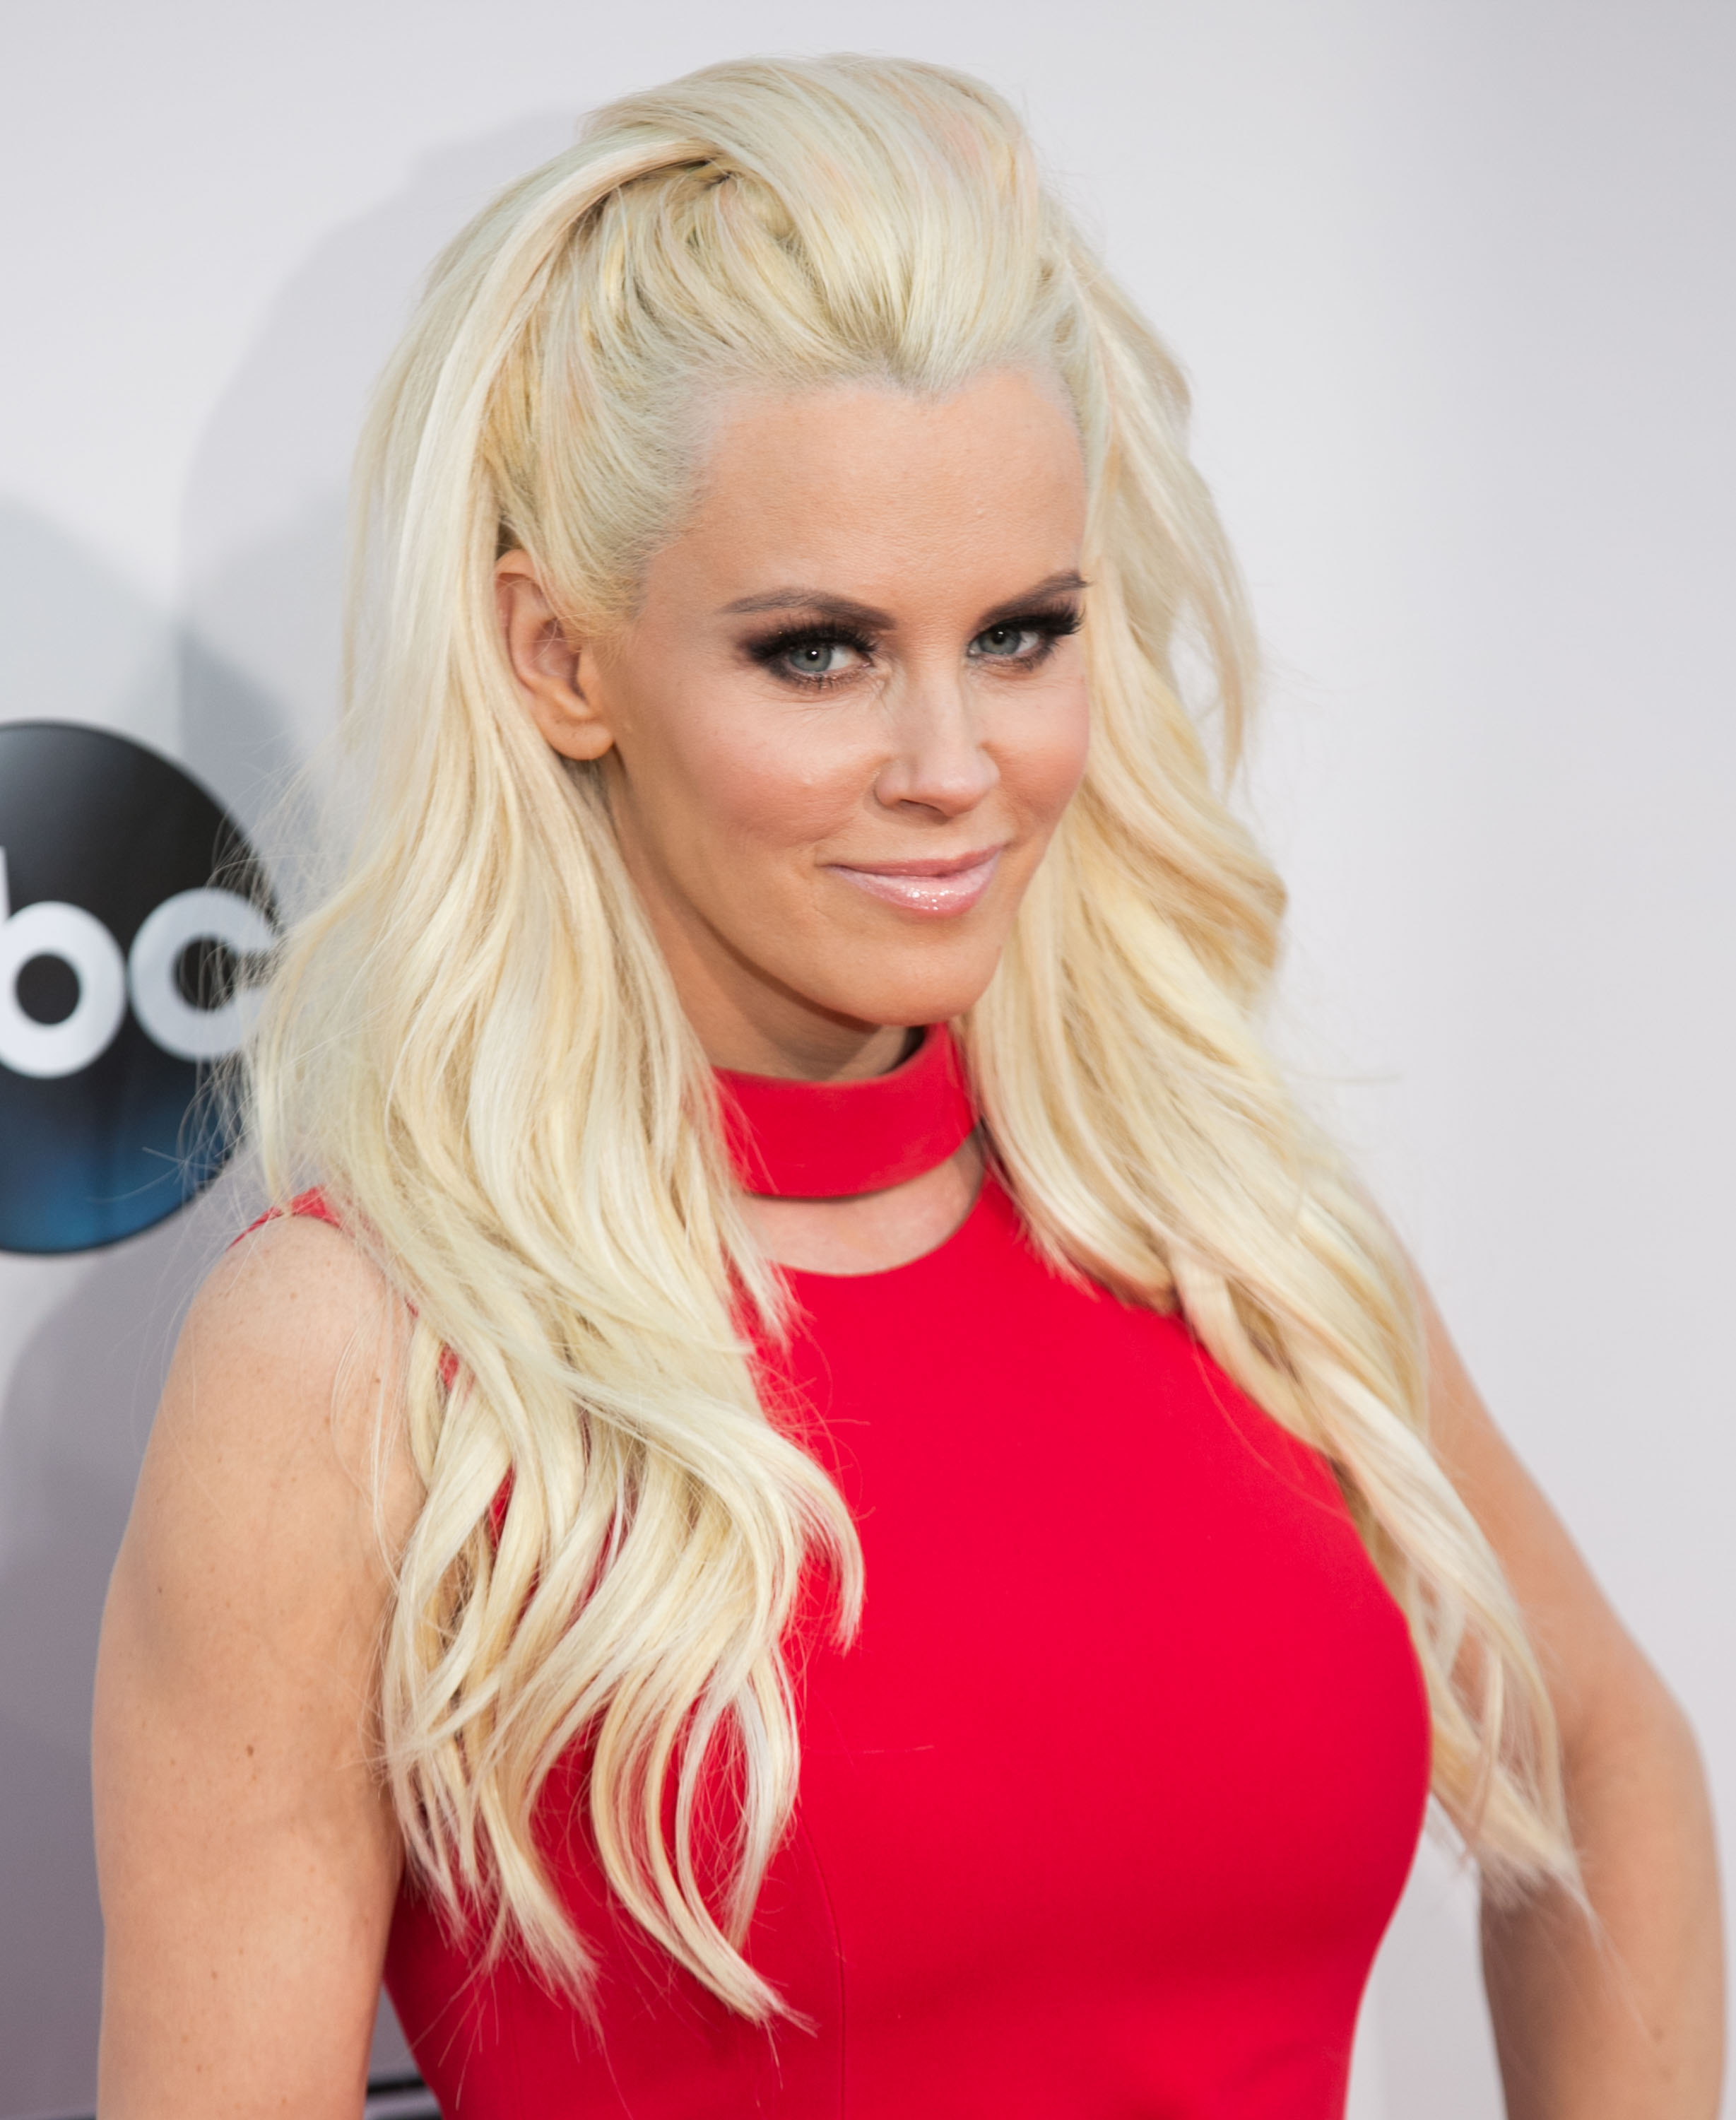 Jenny McCarthy at the 2015 American Music Awards at Microsoft Theater in Los Angeles, California on Nov. 22, 2015. (Brian To/WENN.com)